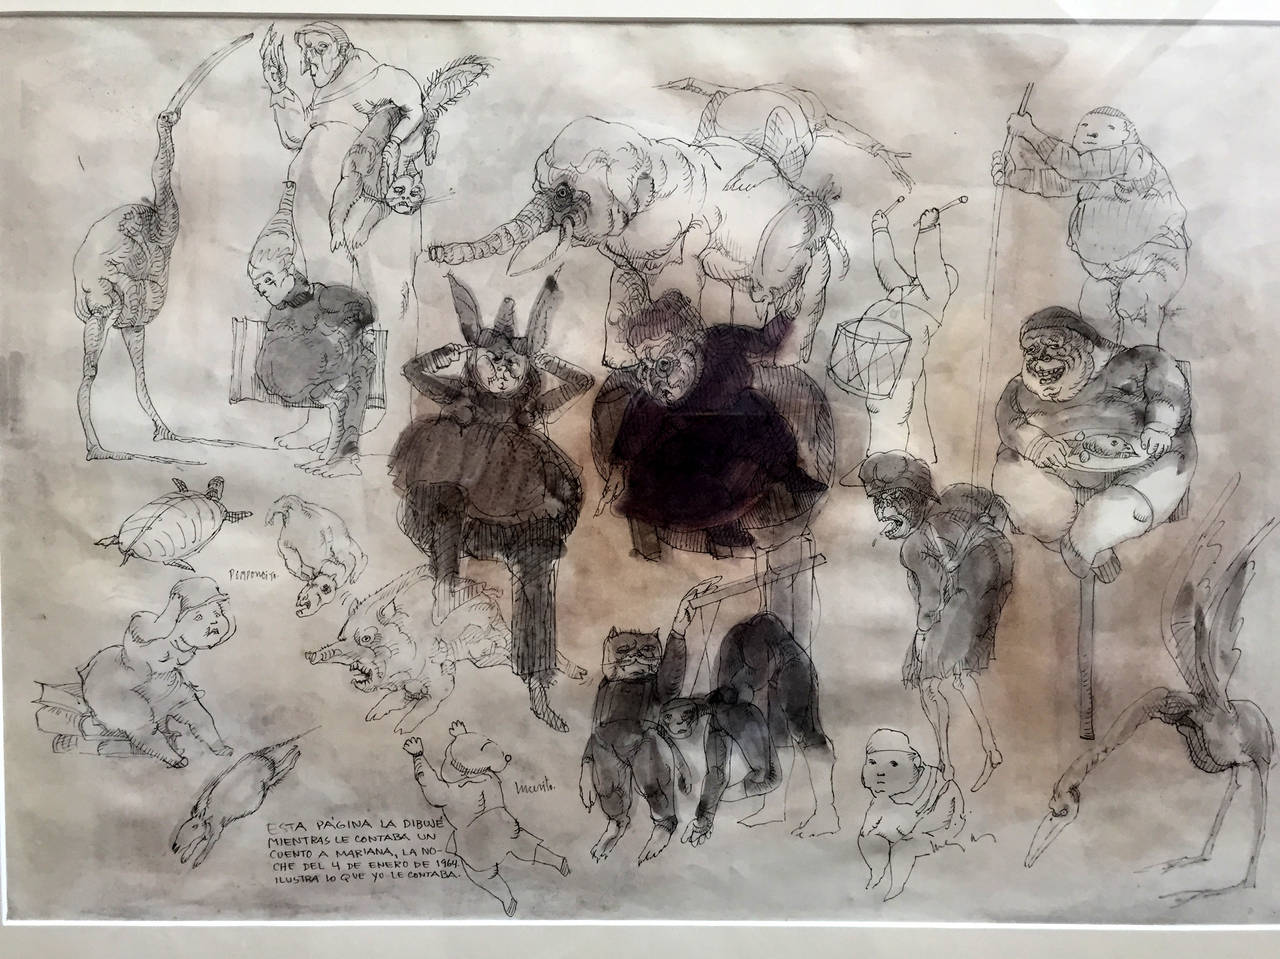 Ink and watercolor on Paper by José Luis Cuevas (Mexican, b.1934). Featuring characters from a story line inscribed lower left as the following (see detailed image)